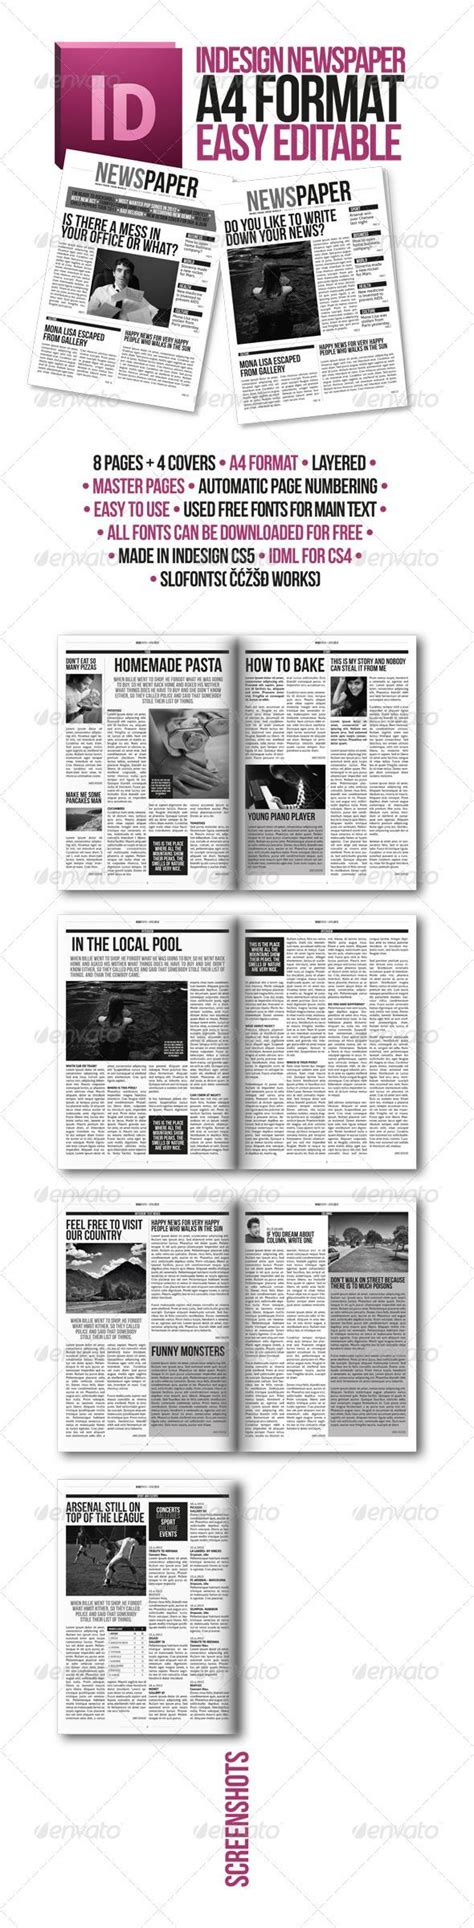 newspaper layout indesign template 25 best newspaper article template ideas on pinterest